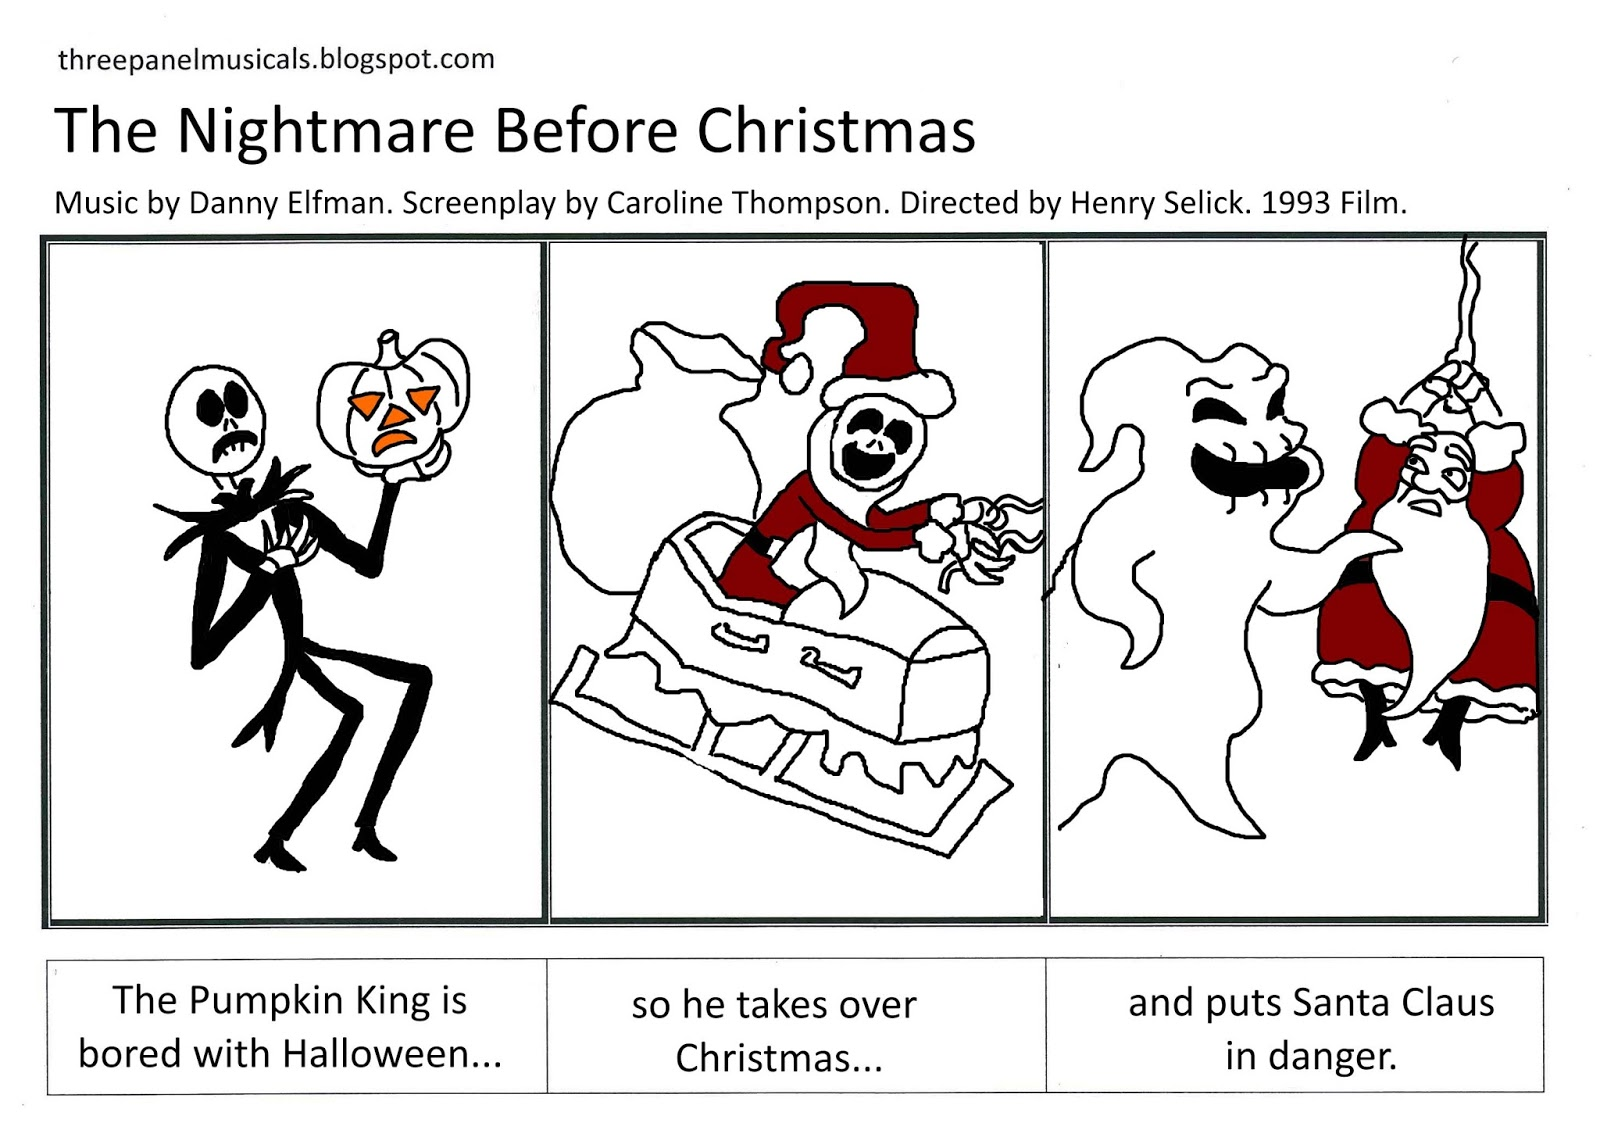 Three Panel Musicals: The Nightmare Before Christmas